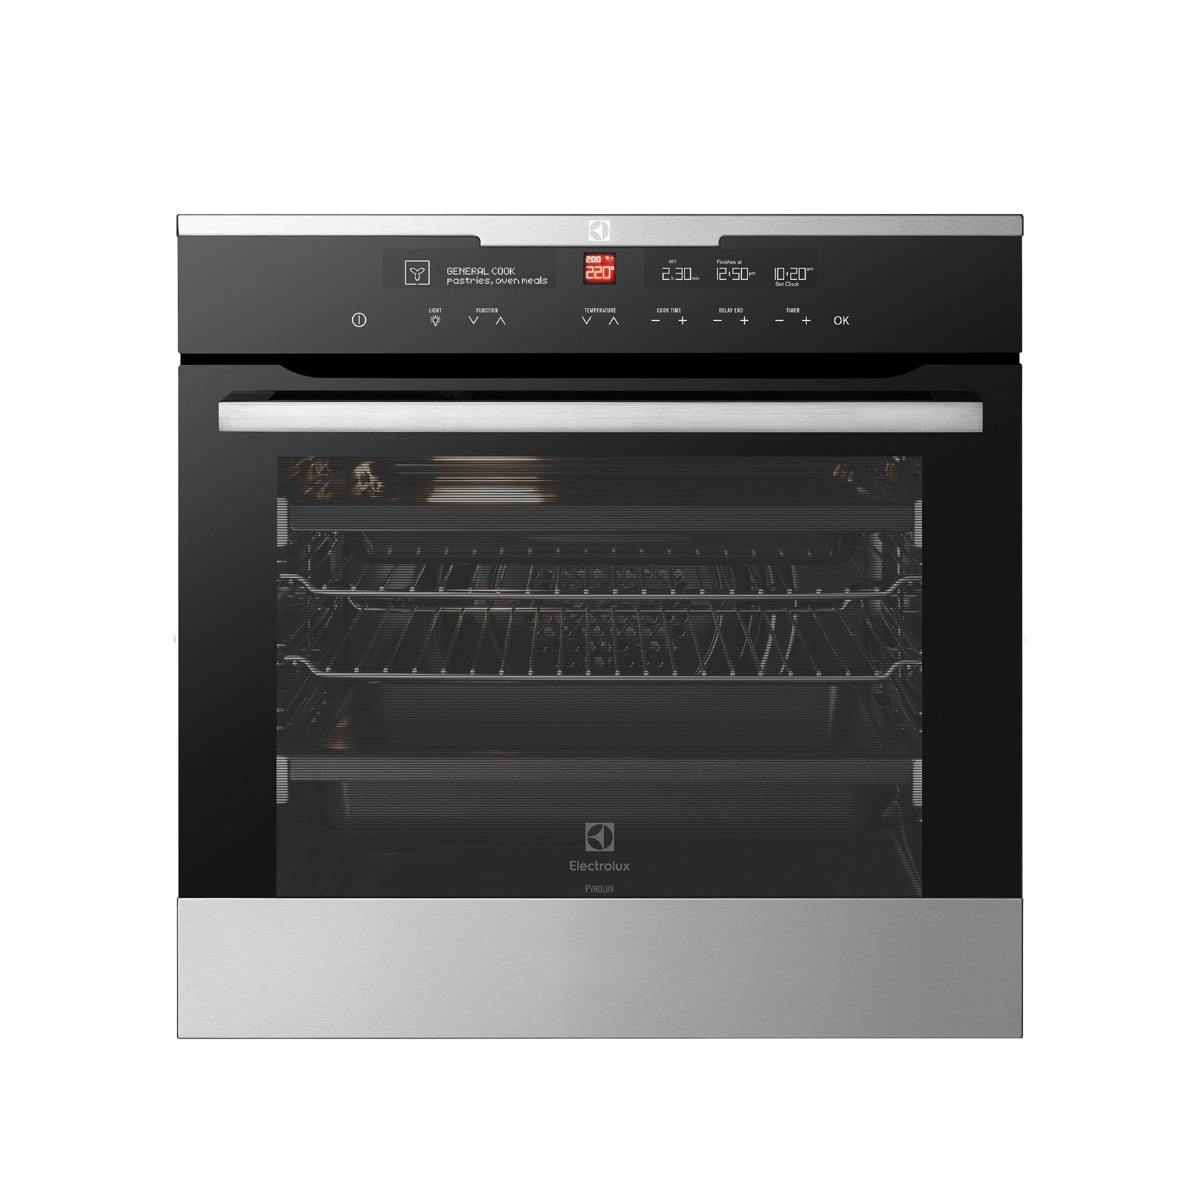 Electrolux EVEP616SC Pyrolytic Electric Wall Oven 39784